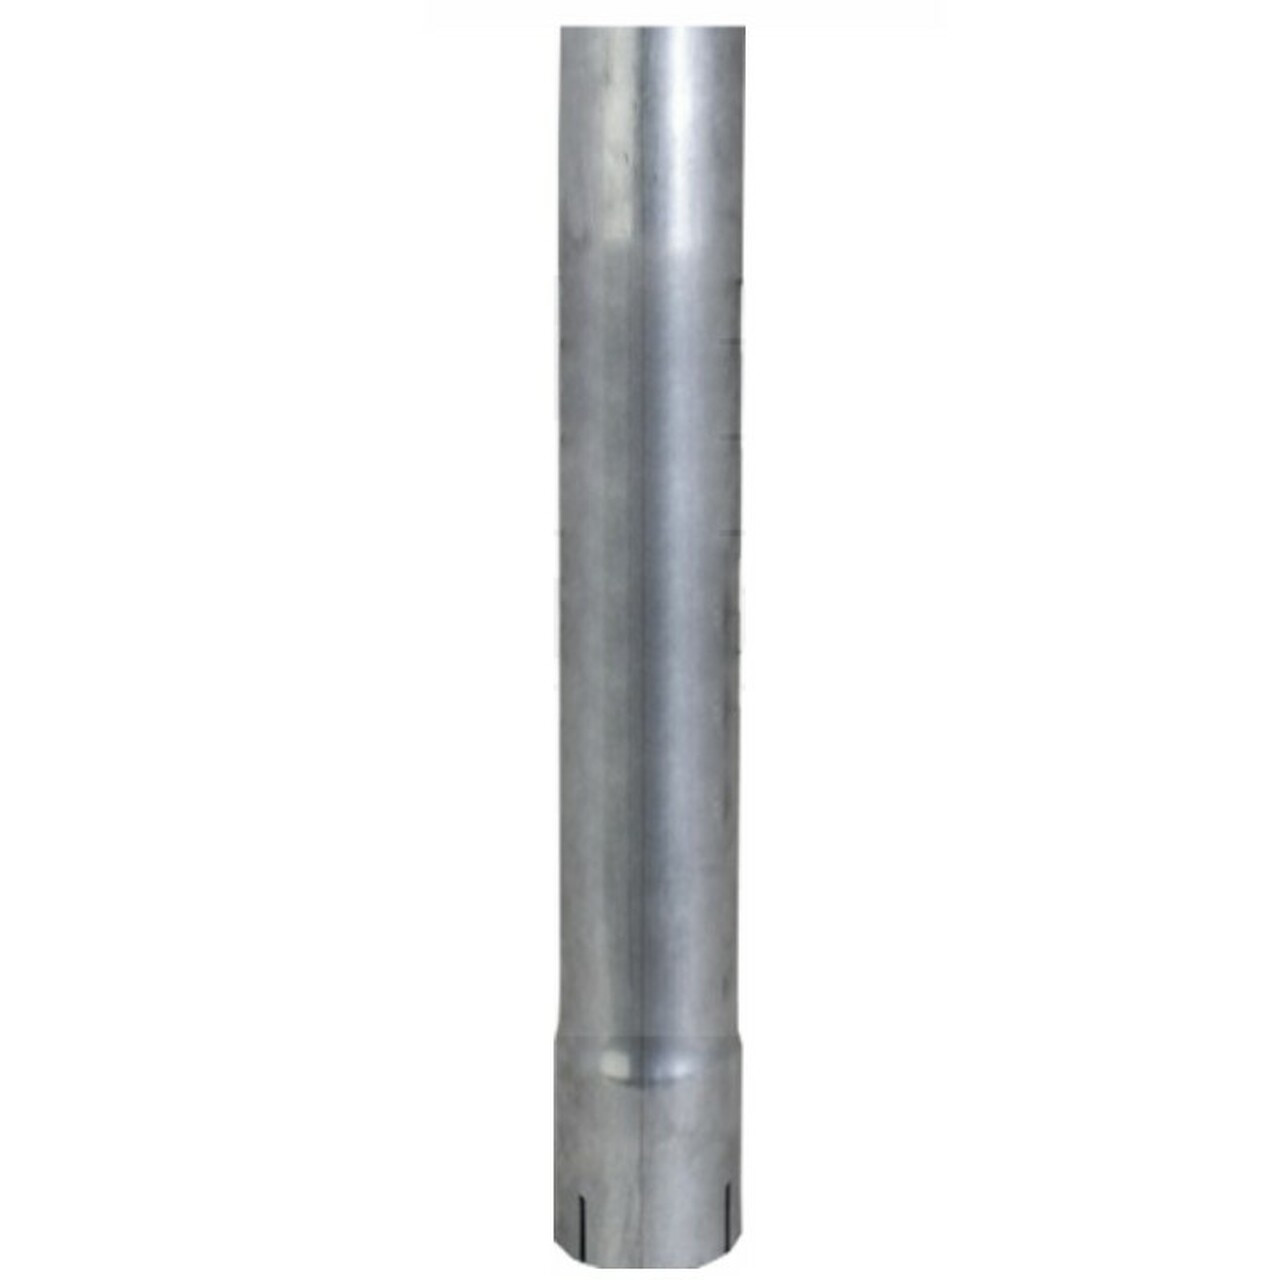 "2.5"" x 24"" Straight Exhaust Stack Pipe Aluminized ID Bottom Nelson 89207A"